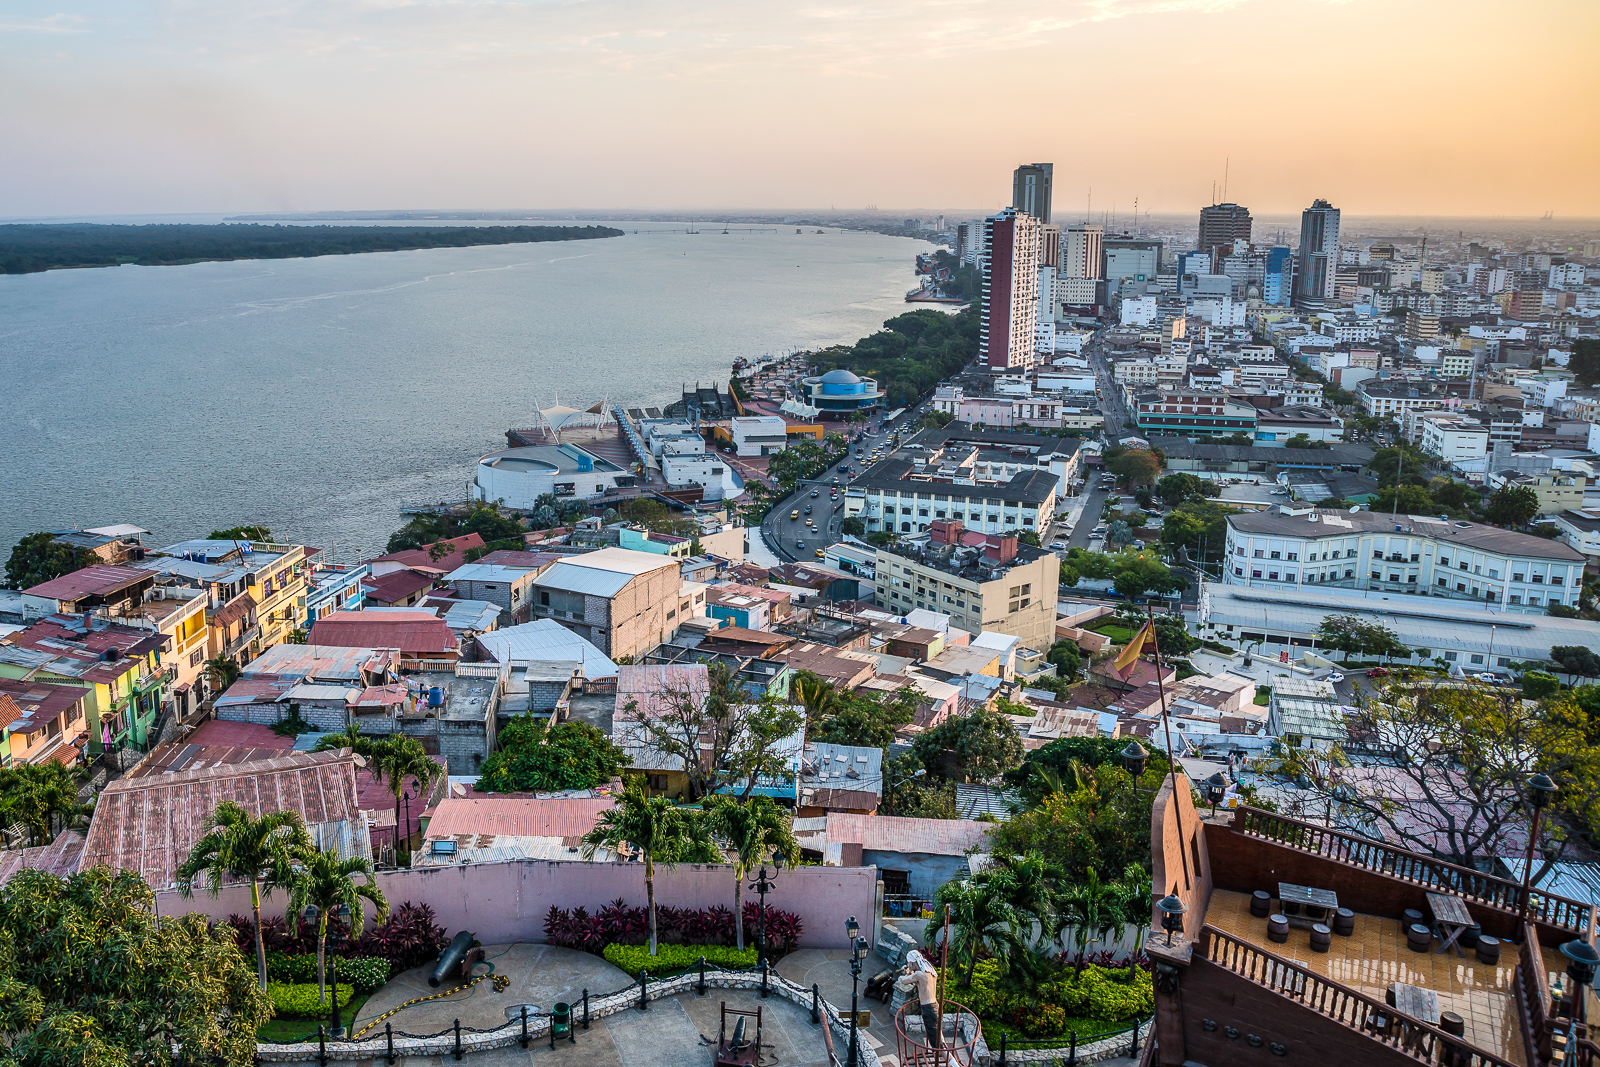 Things to do in Ecuador: High view of the city of Guayaquil and it's river, at sunset. One of the top places to visit in Ecuador. It is easy to fluinto Guayaquil airport from Quito or other international destinations. Guayaquil airport is a gateway to the Galapagos Islands Ecuador.